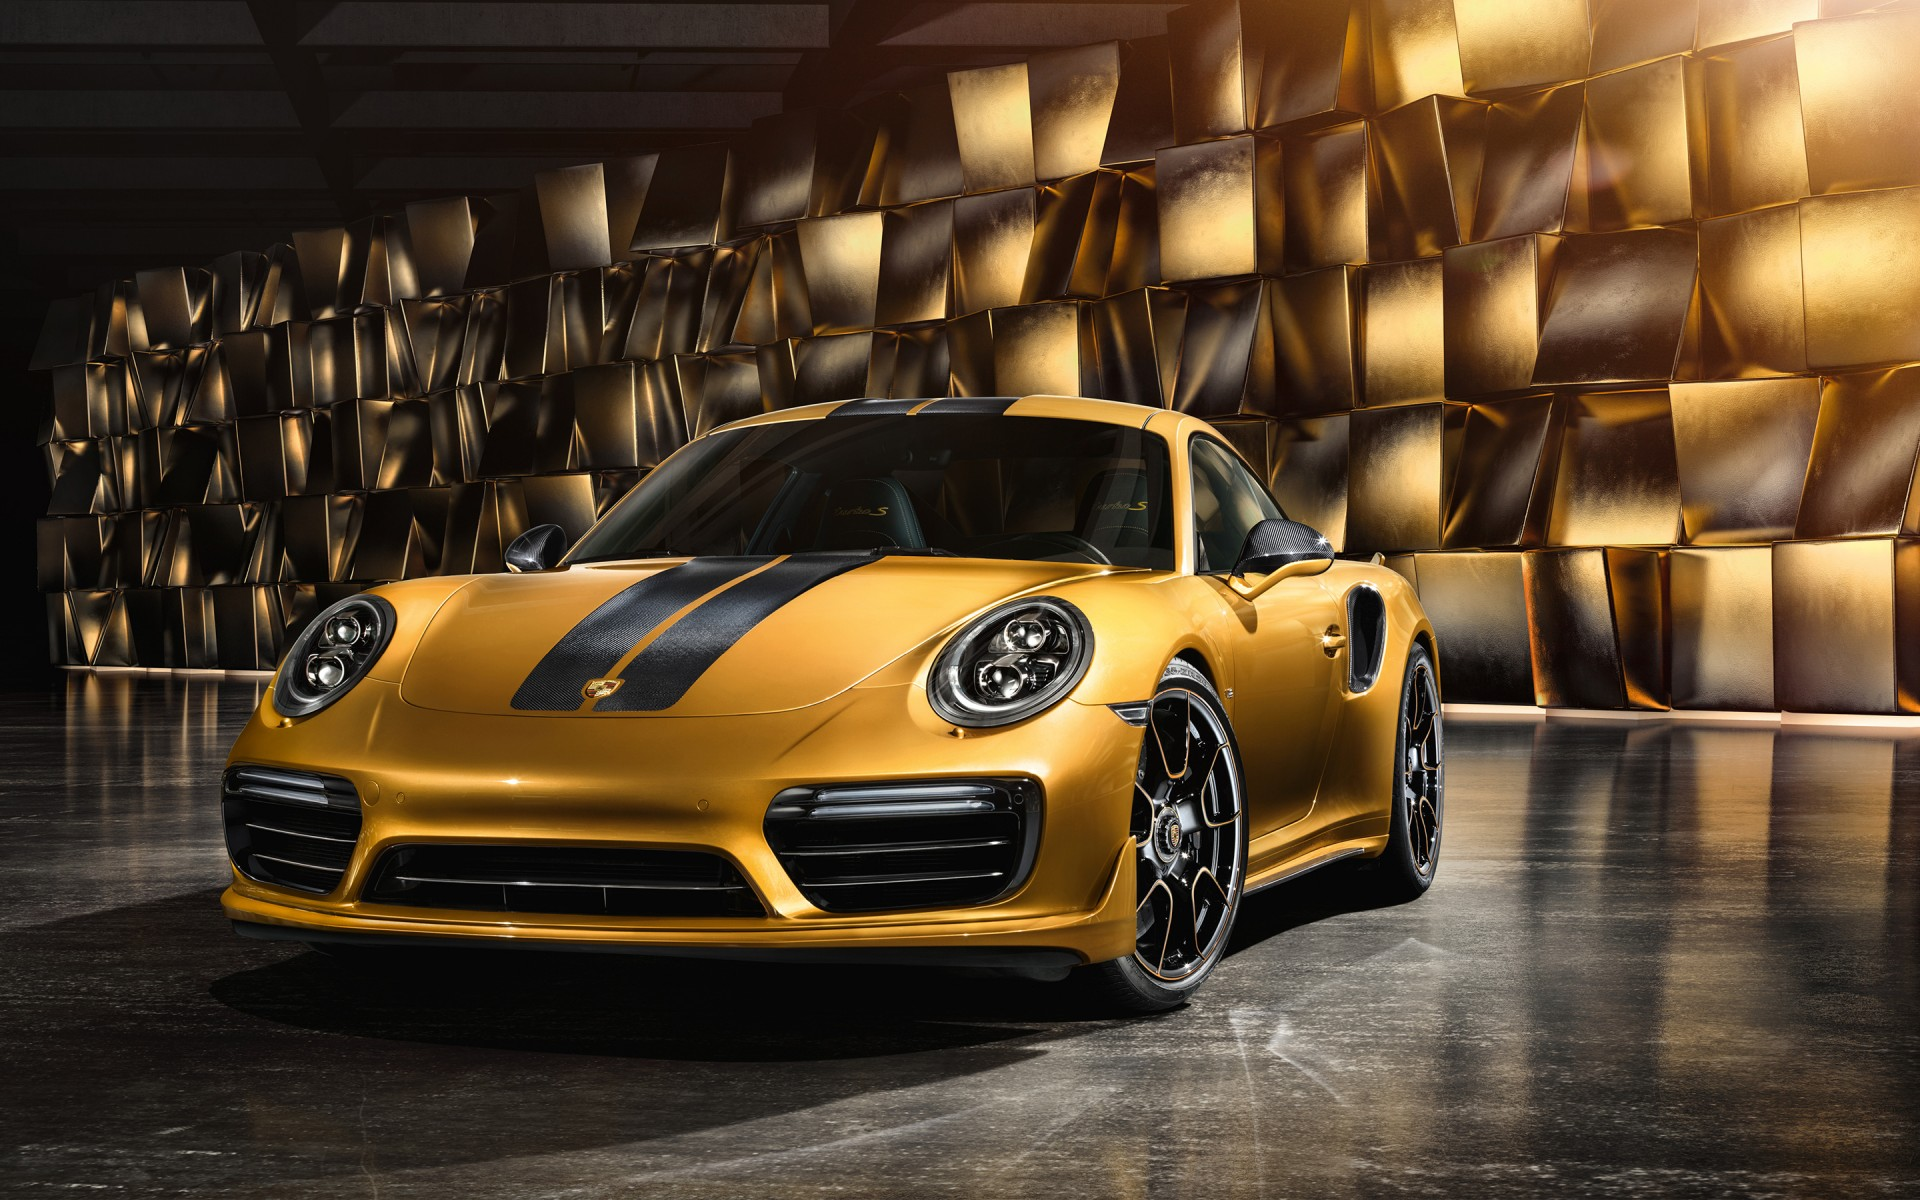 Cars Wallpapers 2014 Hd Download 2017 Porsche 911 Turbo S Exclusive Series Wallpapers Hd